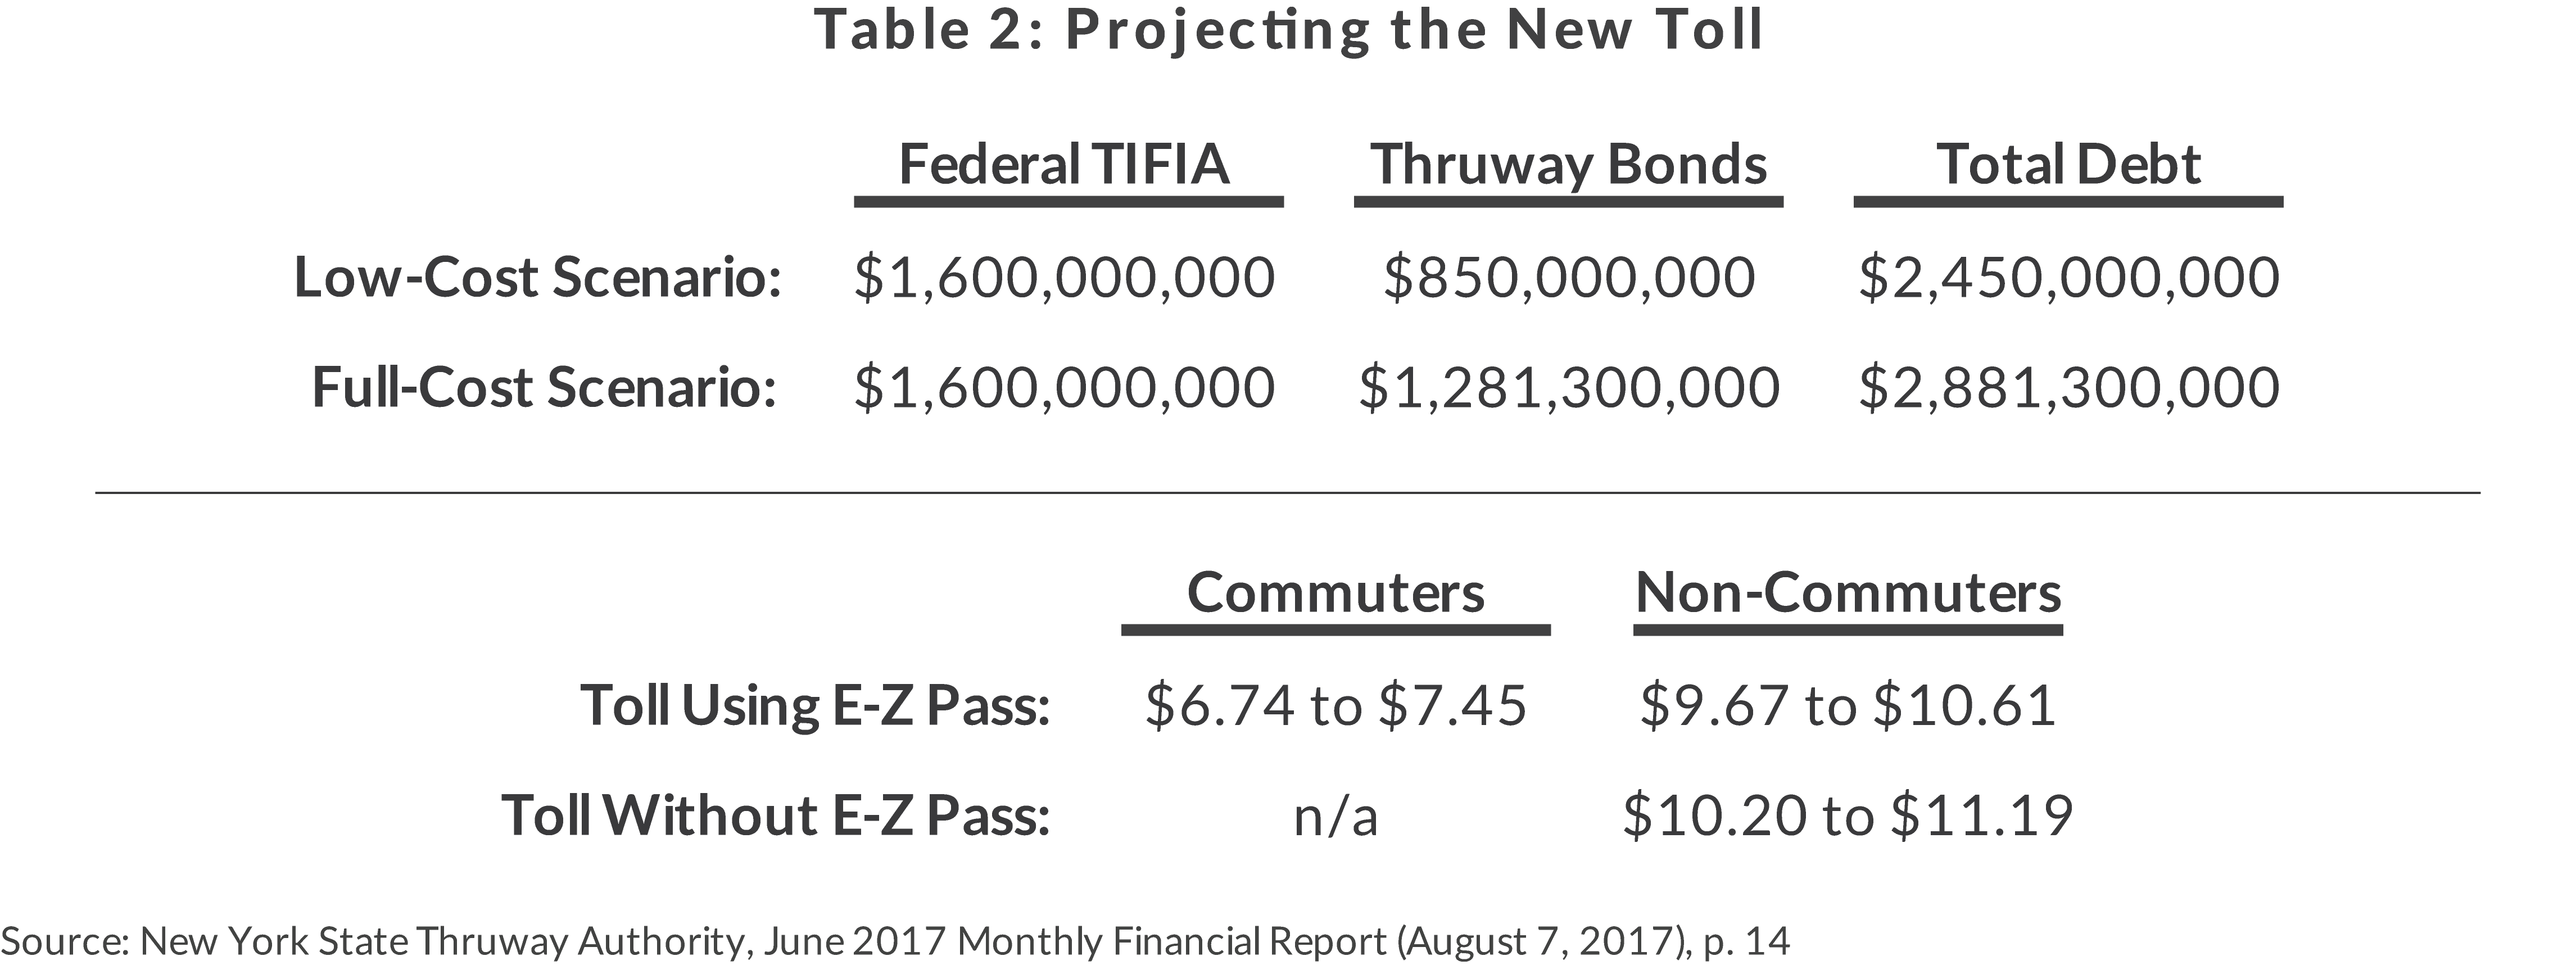 Table 2: Projection of a New Toll on Mario M. Cuomo Bridge